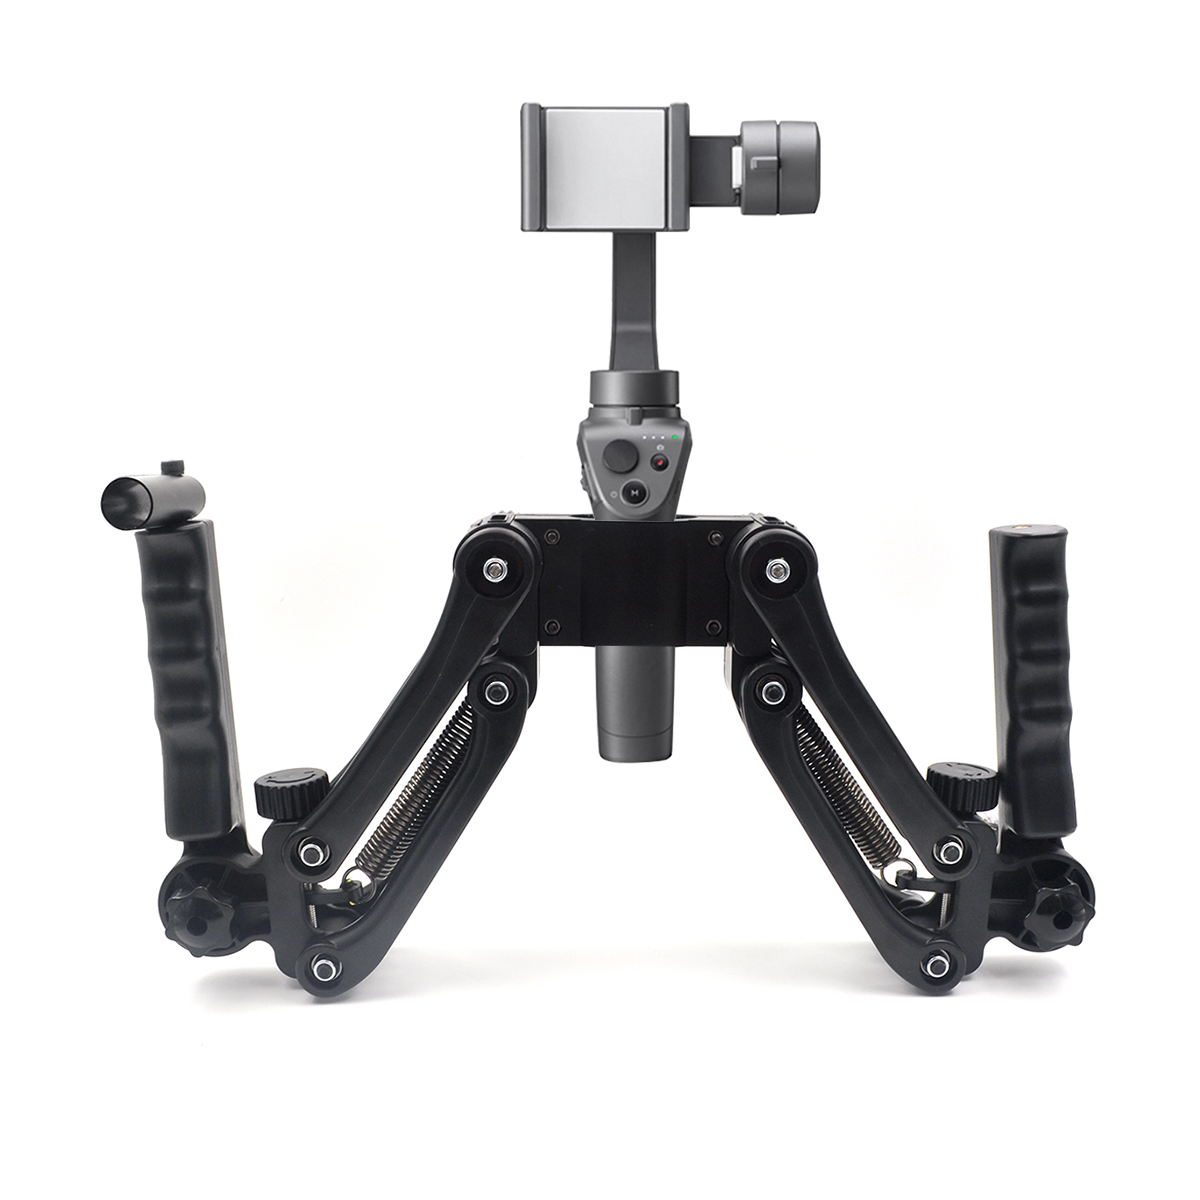 Extension Stand Mount holder 4th Axis gimbal stabilizer for DJI Ronin S,DJI Osmo plus, Osmo Mobile/ProExtension Stand Mount holder 4th Axis gimbal stabilizer for DJI Ronin S,DJI Osmo plus, Osmo Mobile/Pro